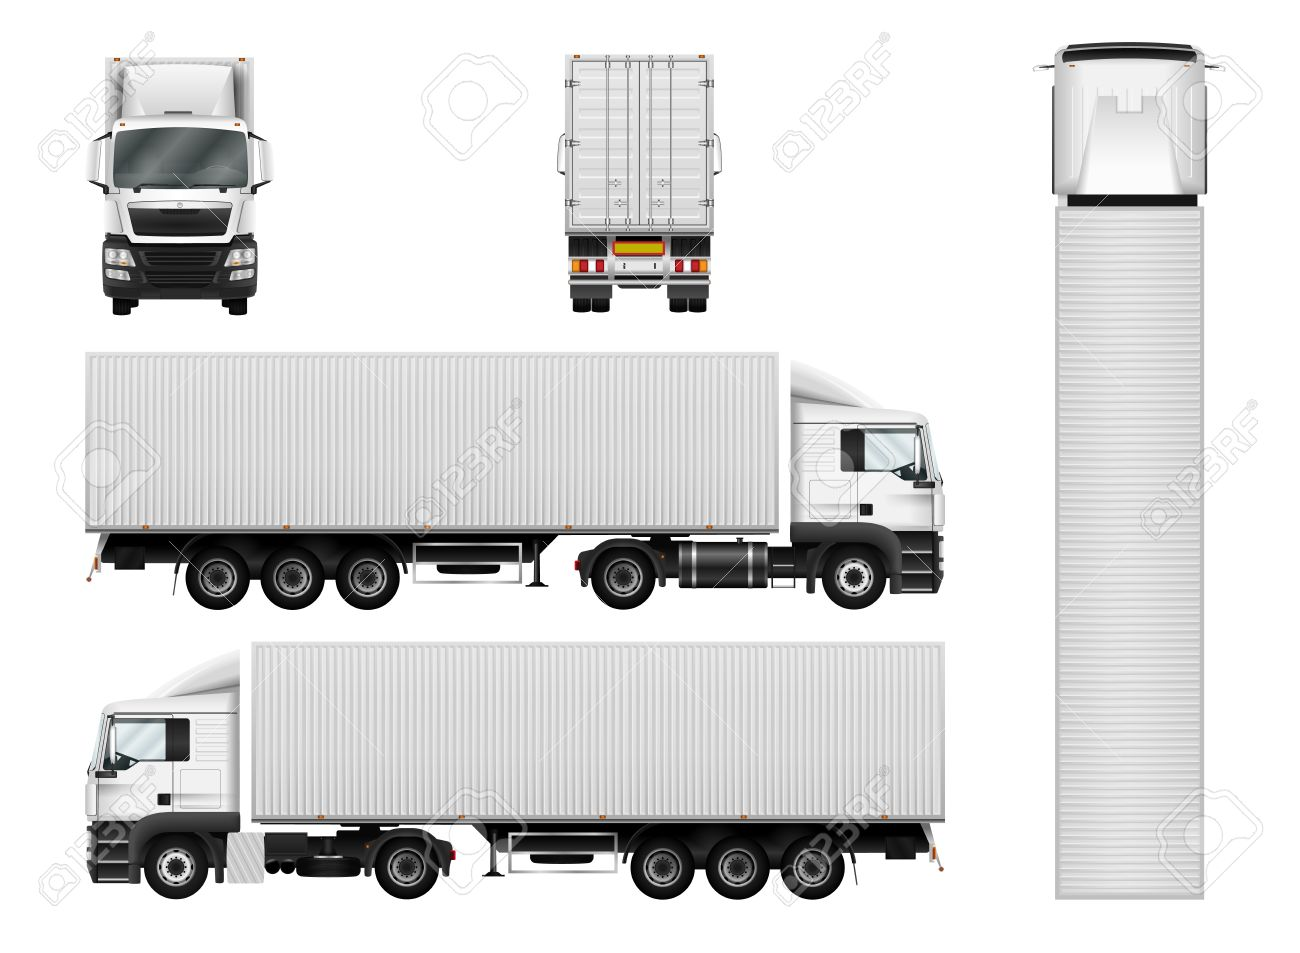 Truck trailer with container. Vector semi truck template on white. Cargo delivery vehicle. Separate groups and layers. - 64825231